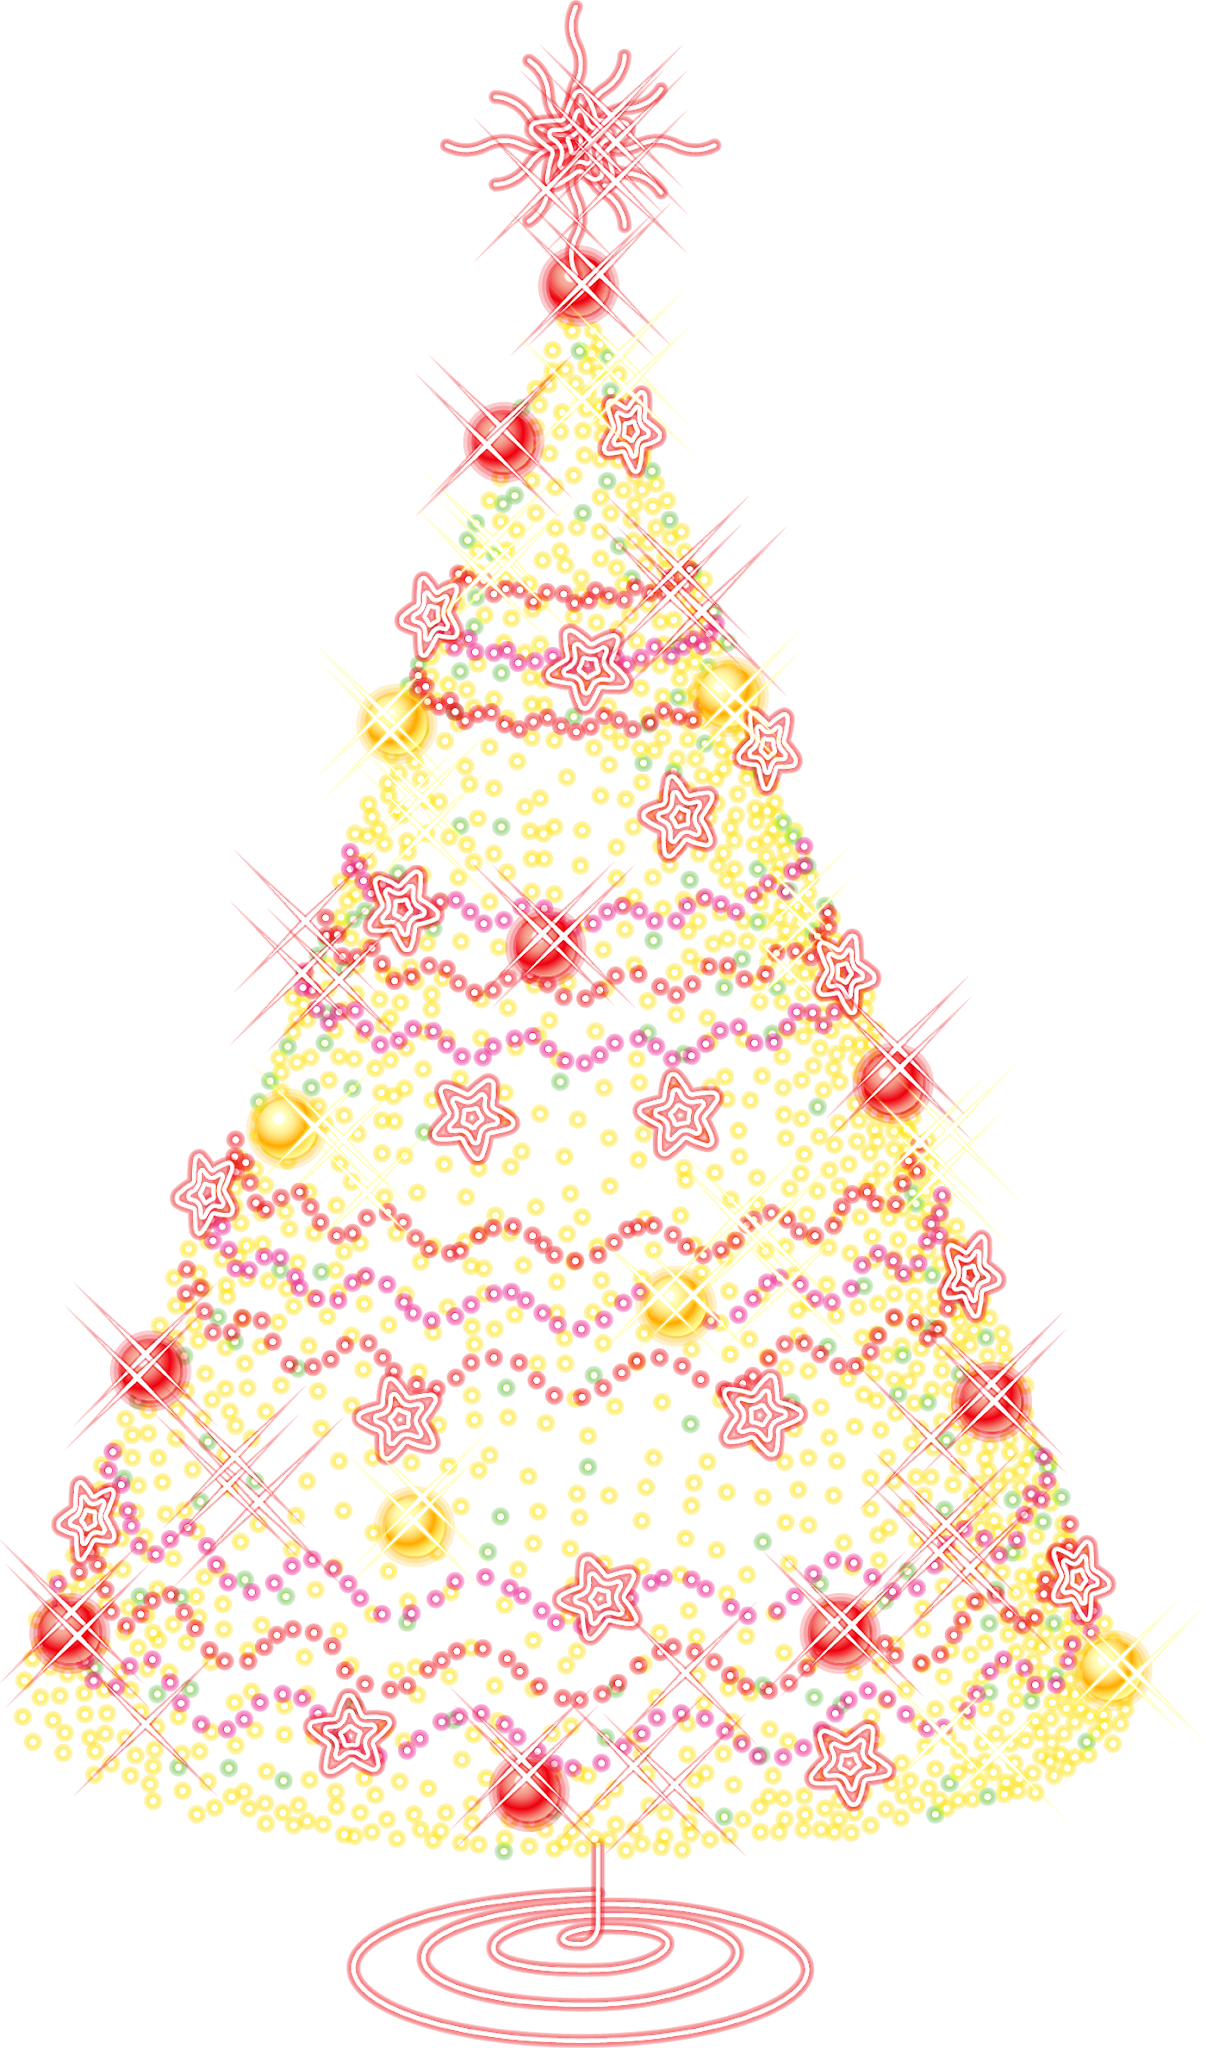 White Christmas Tree Png Christmas Png Image Clipart Christmas Tree Gif Christmas Tree Clipart Christmas Card Pictures